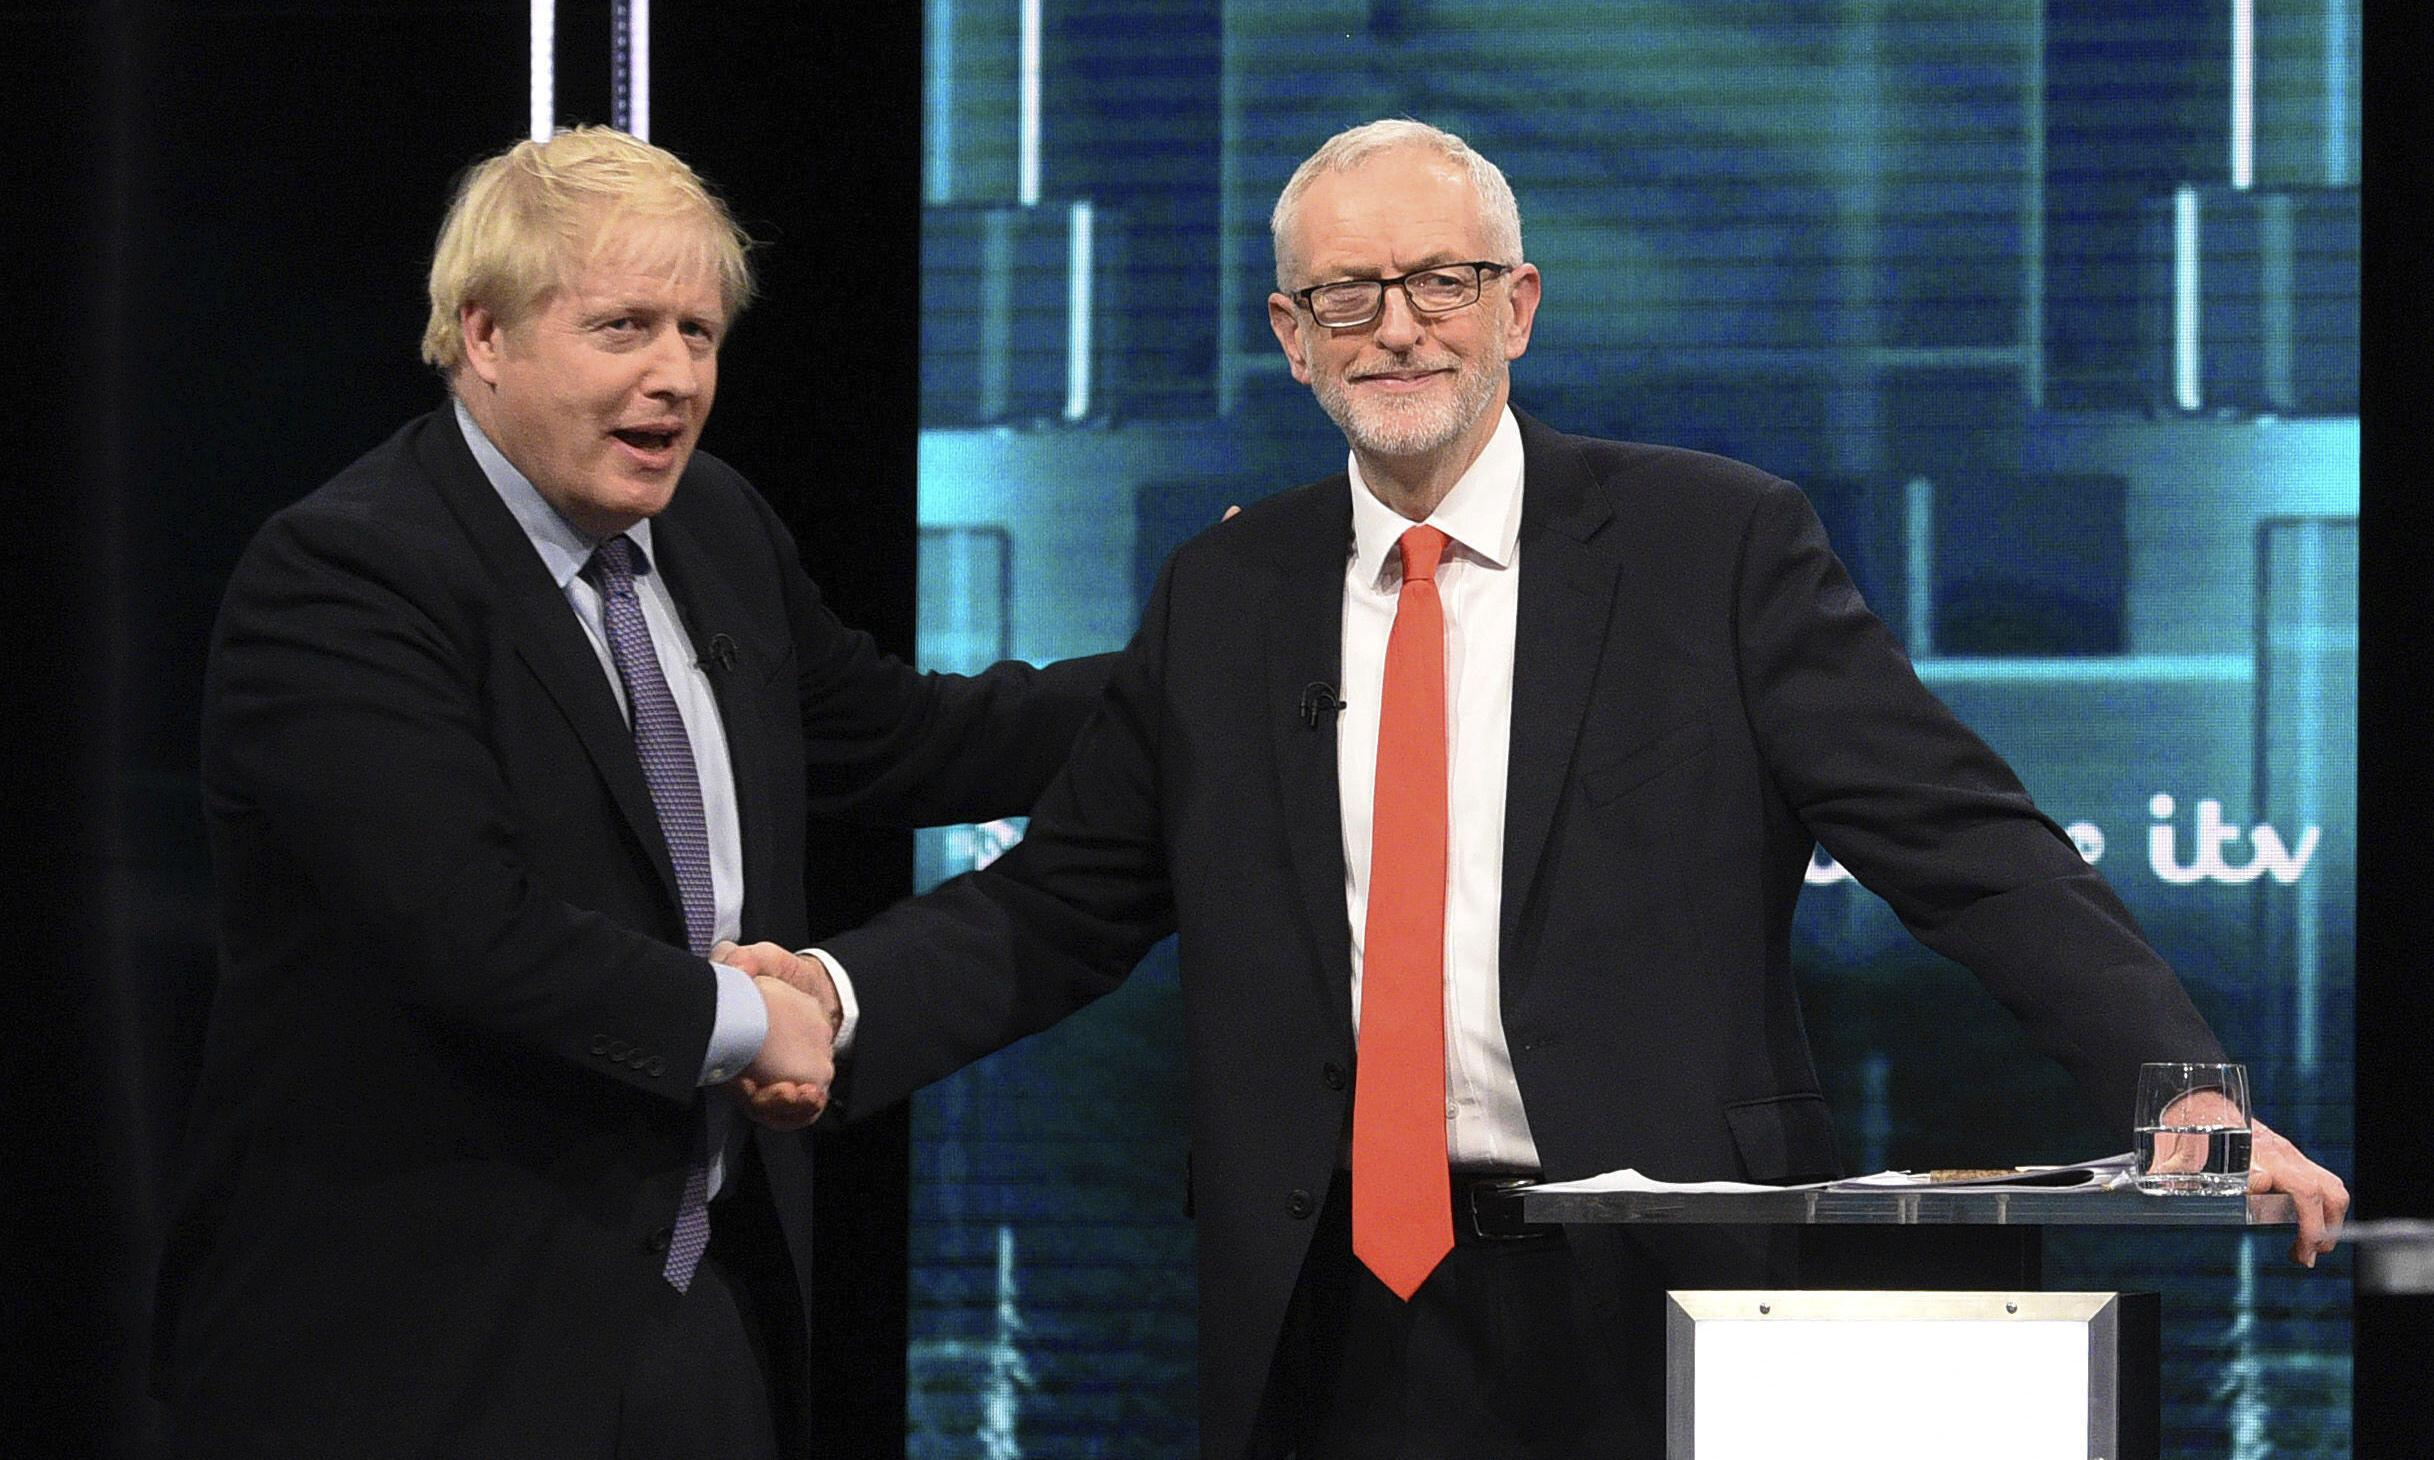 Andrew Sparrow's election briefing: Johnson v Corbyn – the verdict